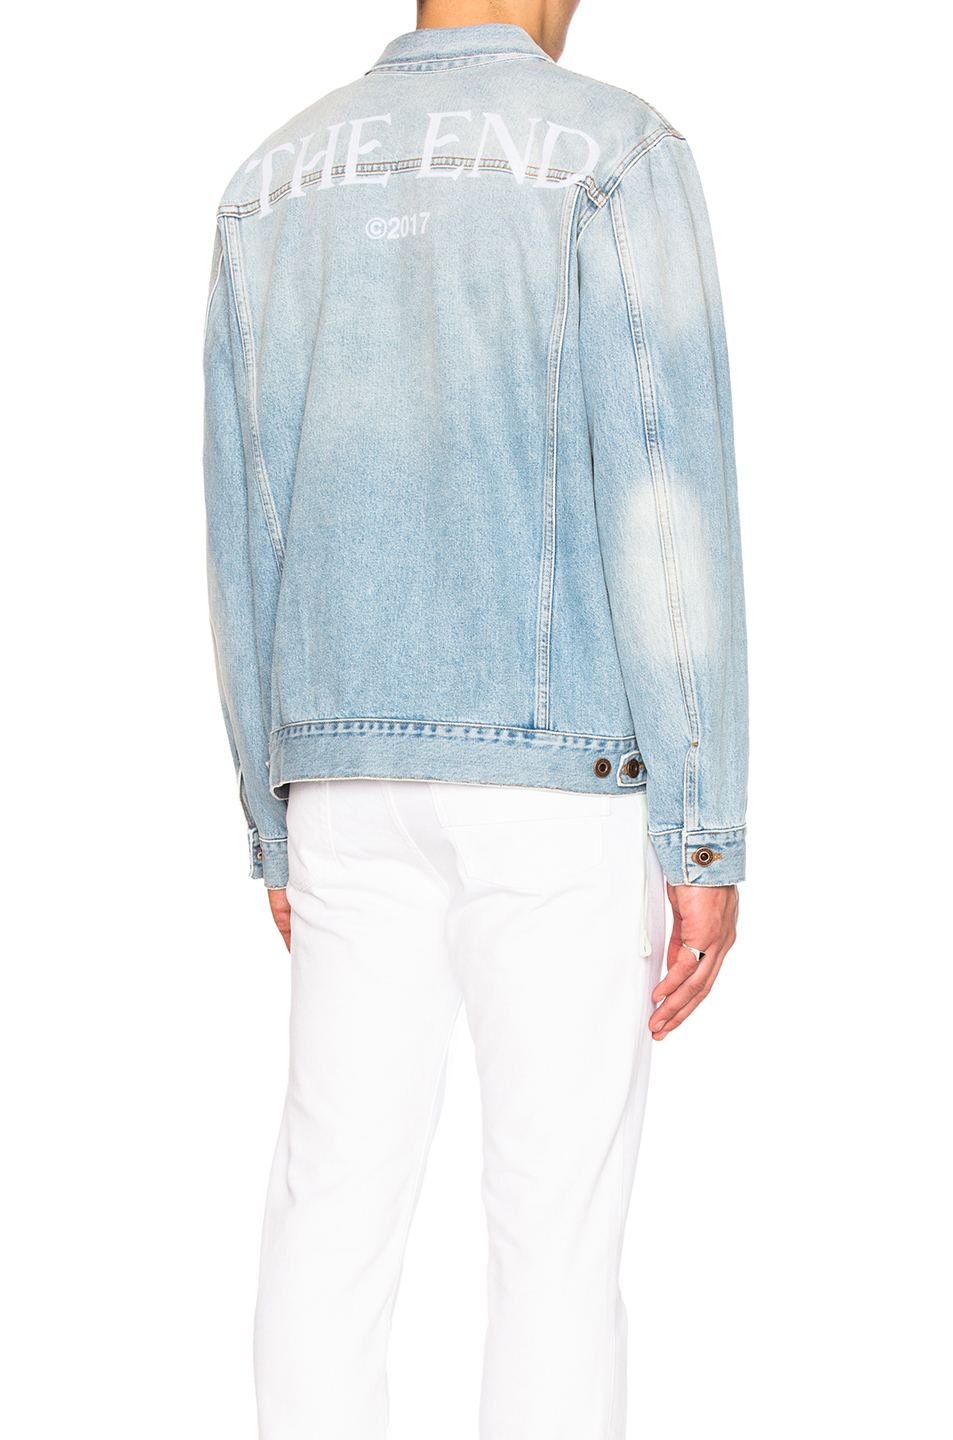 OFF-WHITE Scorpion Denim Jacket in Blue